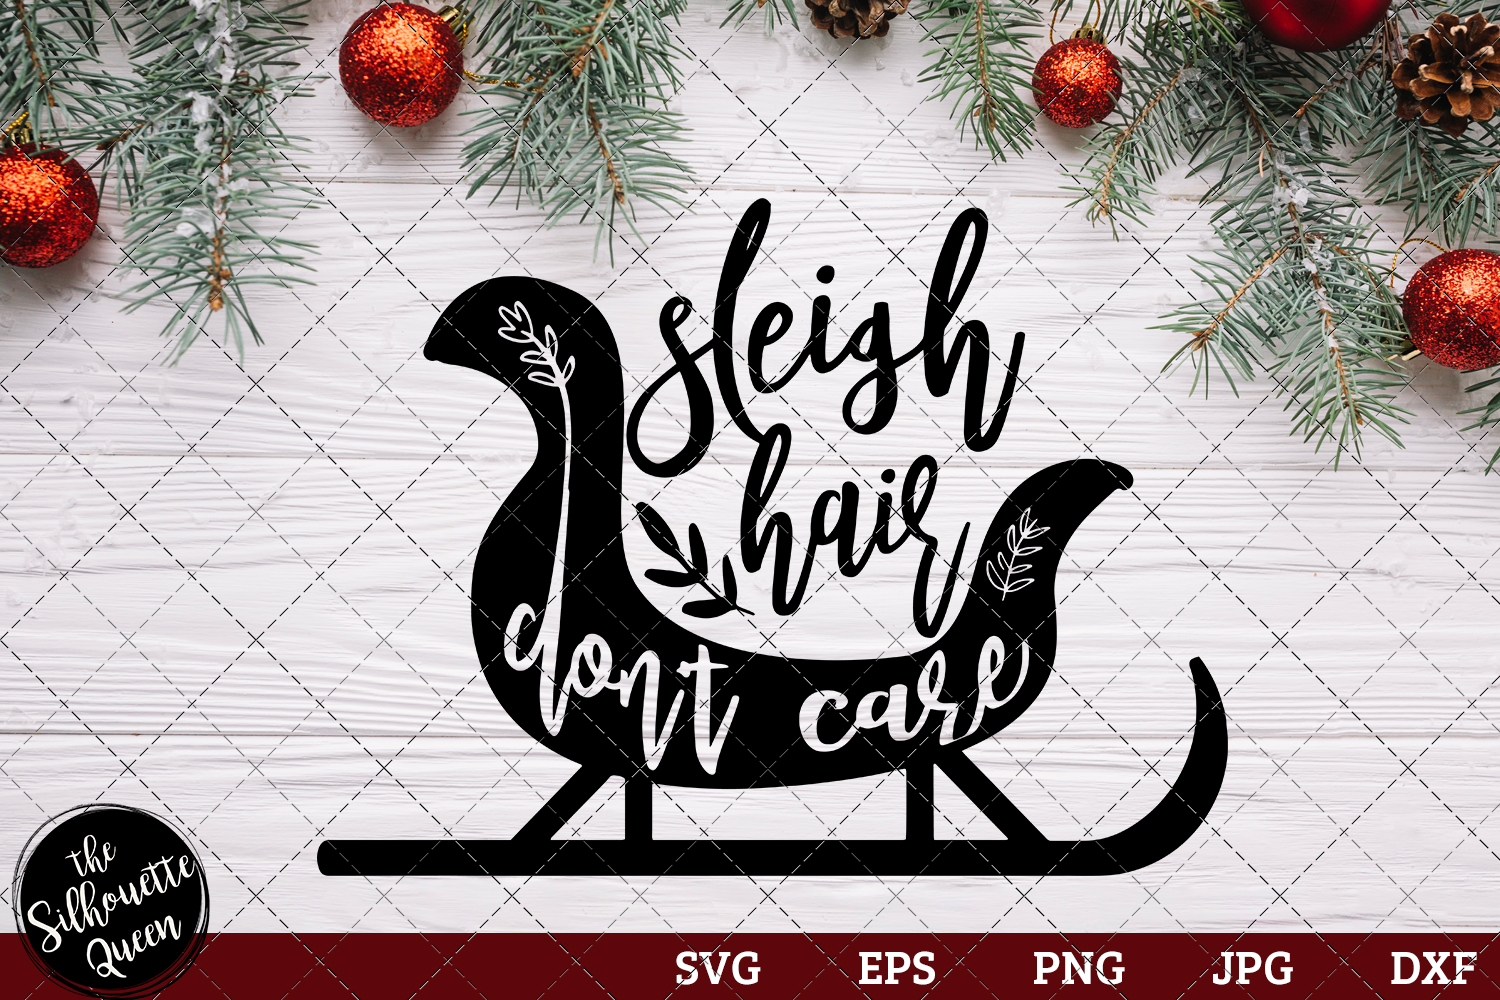 Download Free Sleigh Hair Don T Care Graphic By Thesilhouettequeenshop for Cricut Explore, Silhouette and other cutting machines.